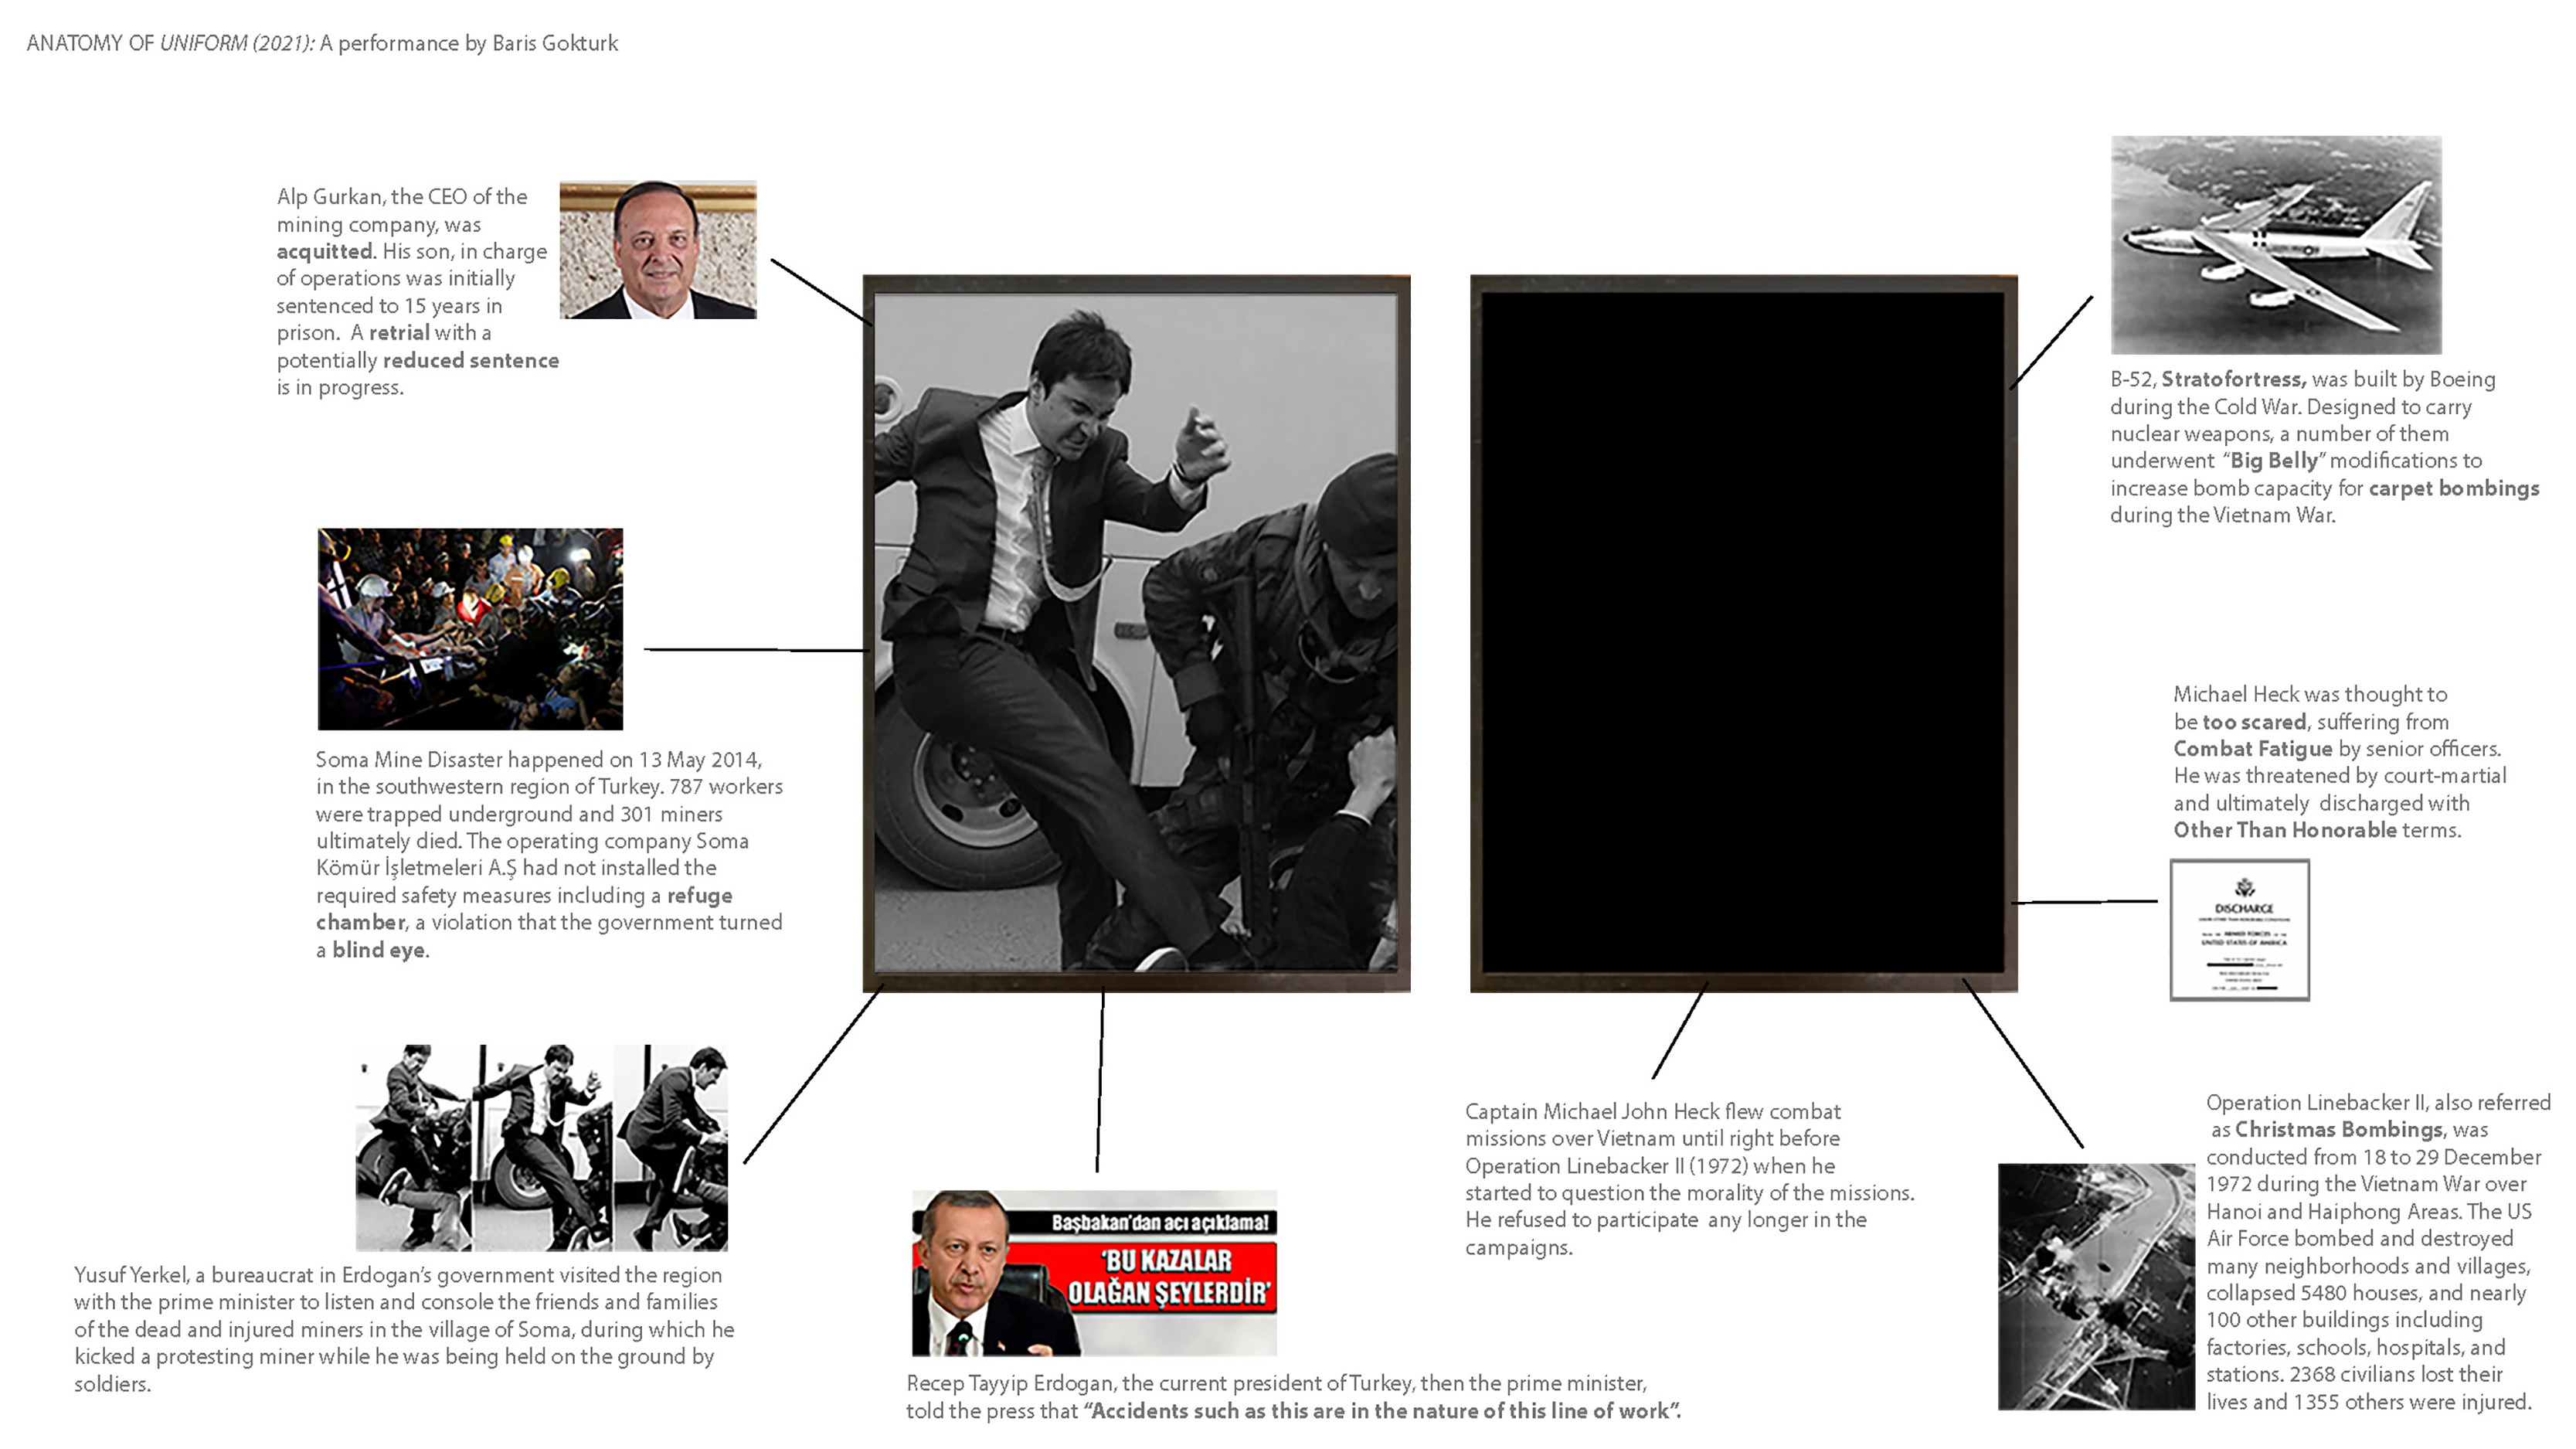 Uniform is a live performance with supplemental website content (pictured in the slide) . Commissioned by Jewish Museum in New York, the performance is a mediation on two photographs, one in the picture frame, the other absent, about two events and two individuals who made different choices under parallel circumstances.